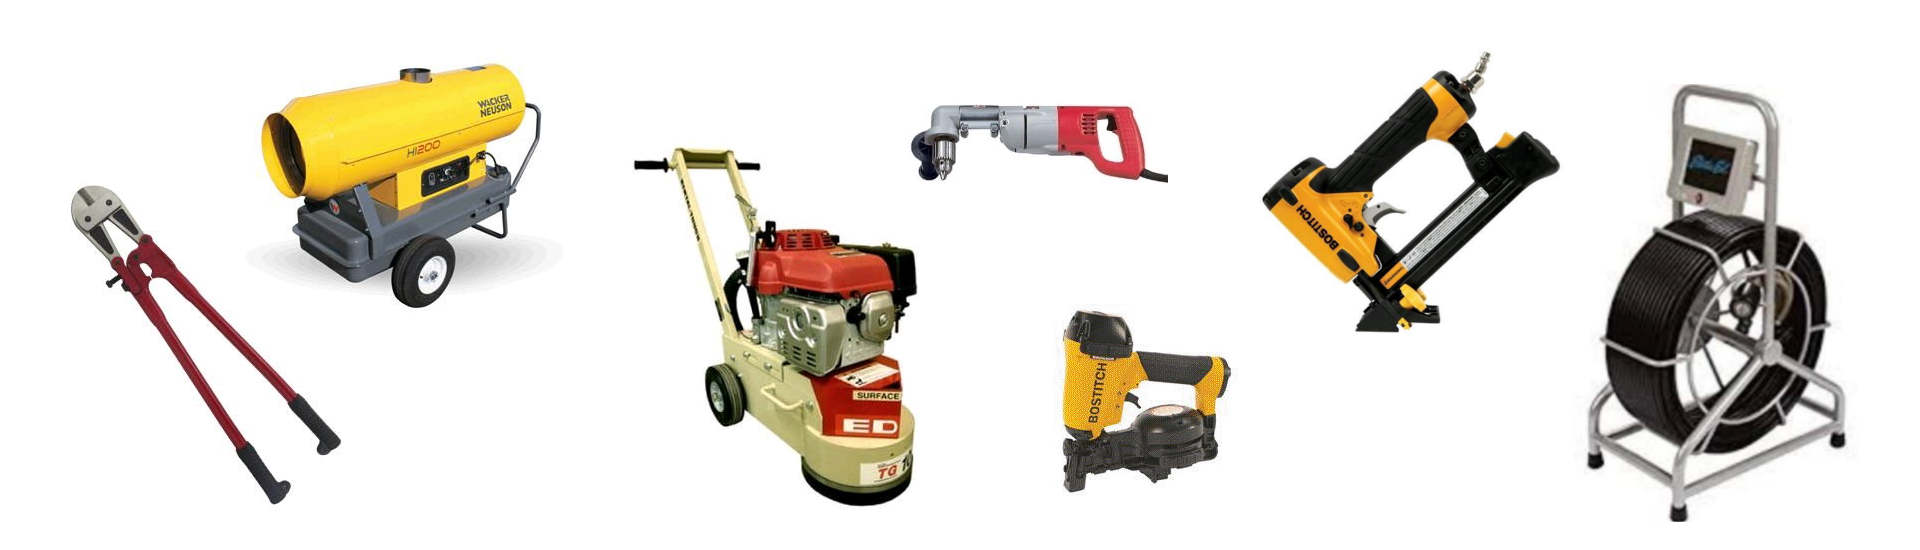 Contractor Equipment Rentals in Santa Clara County & the Silicon Valley